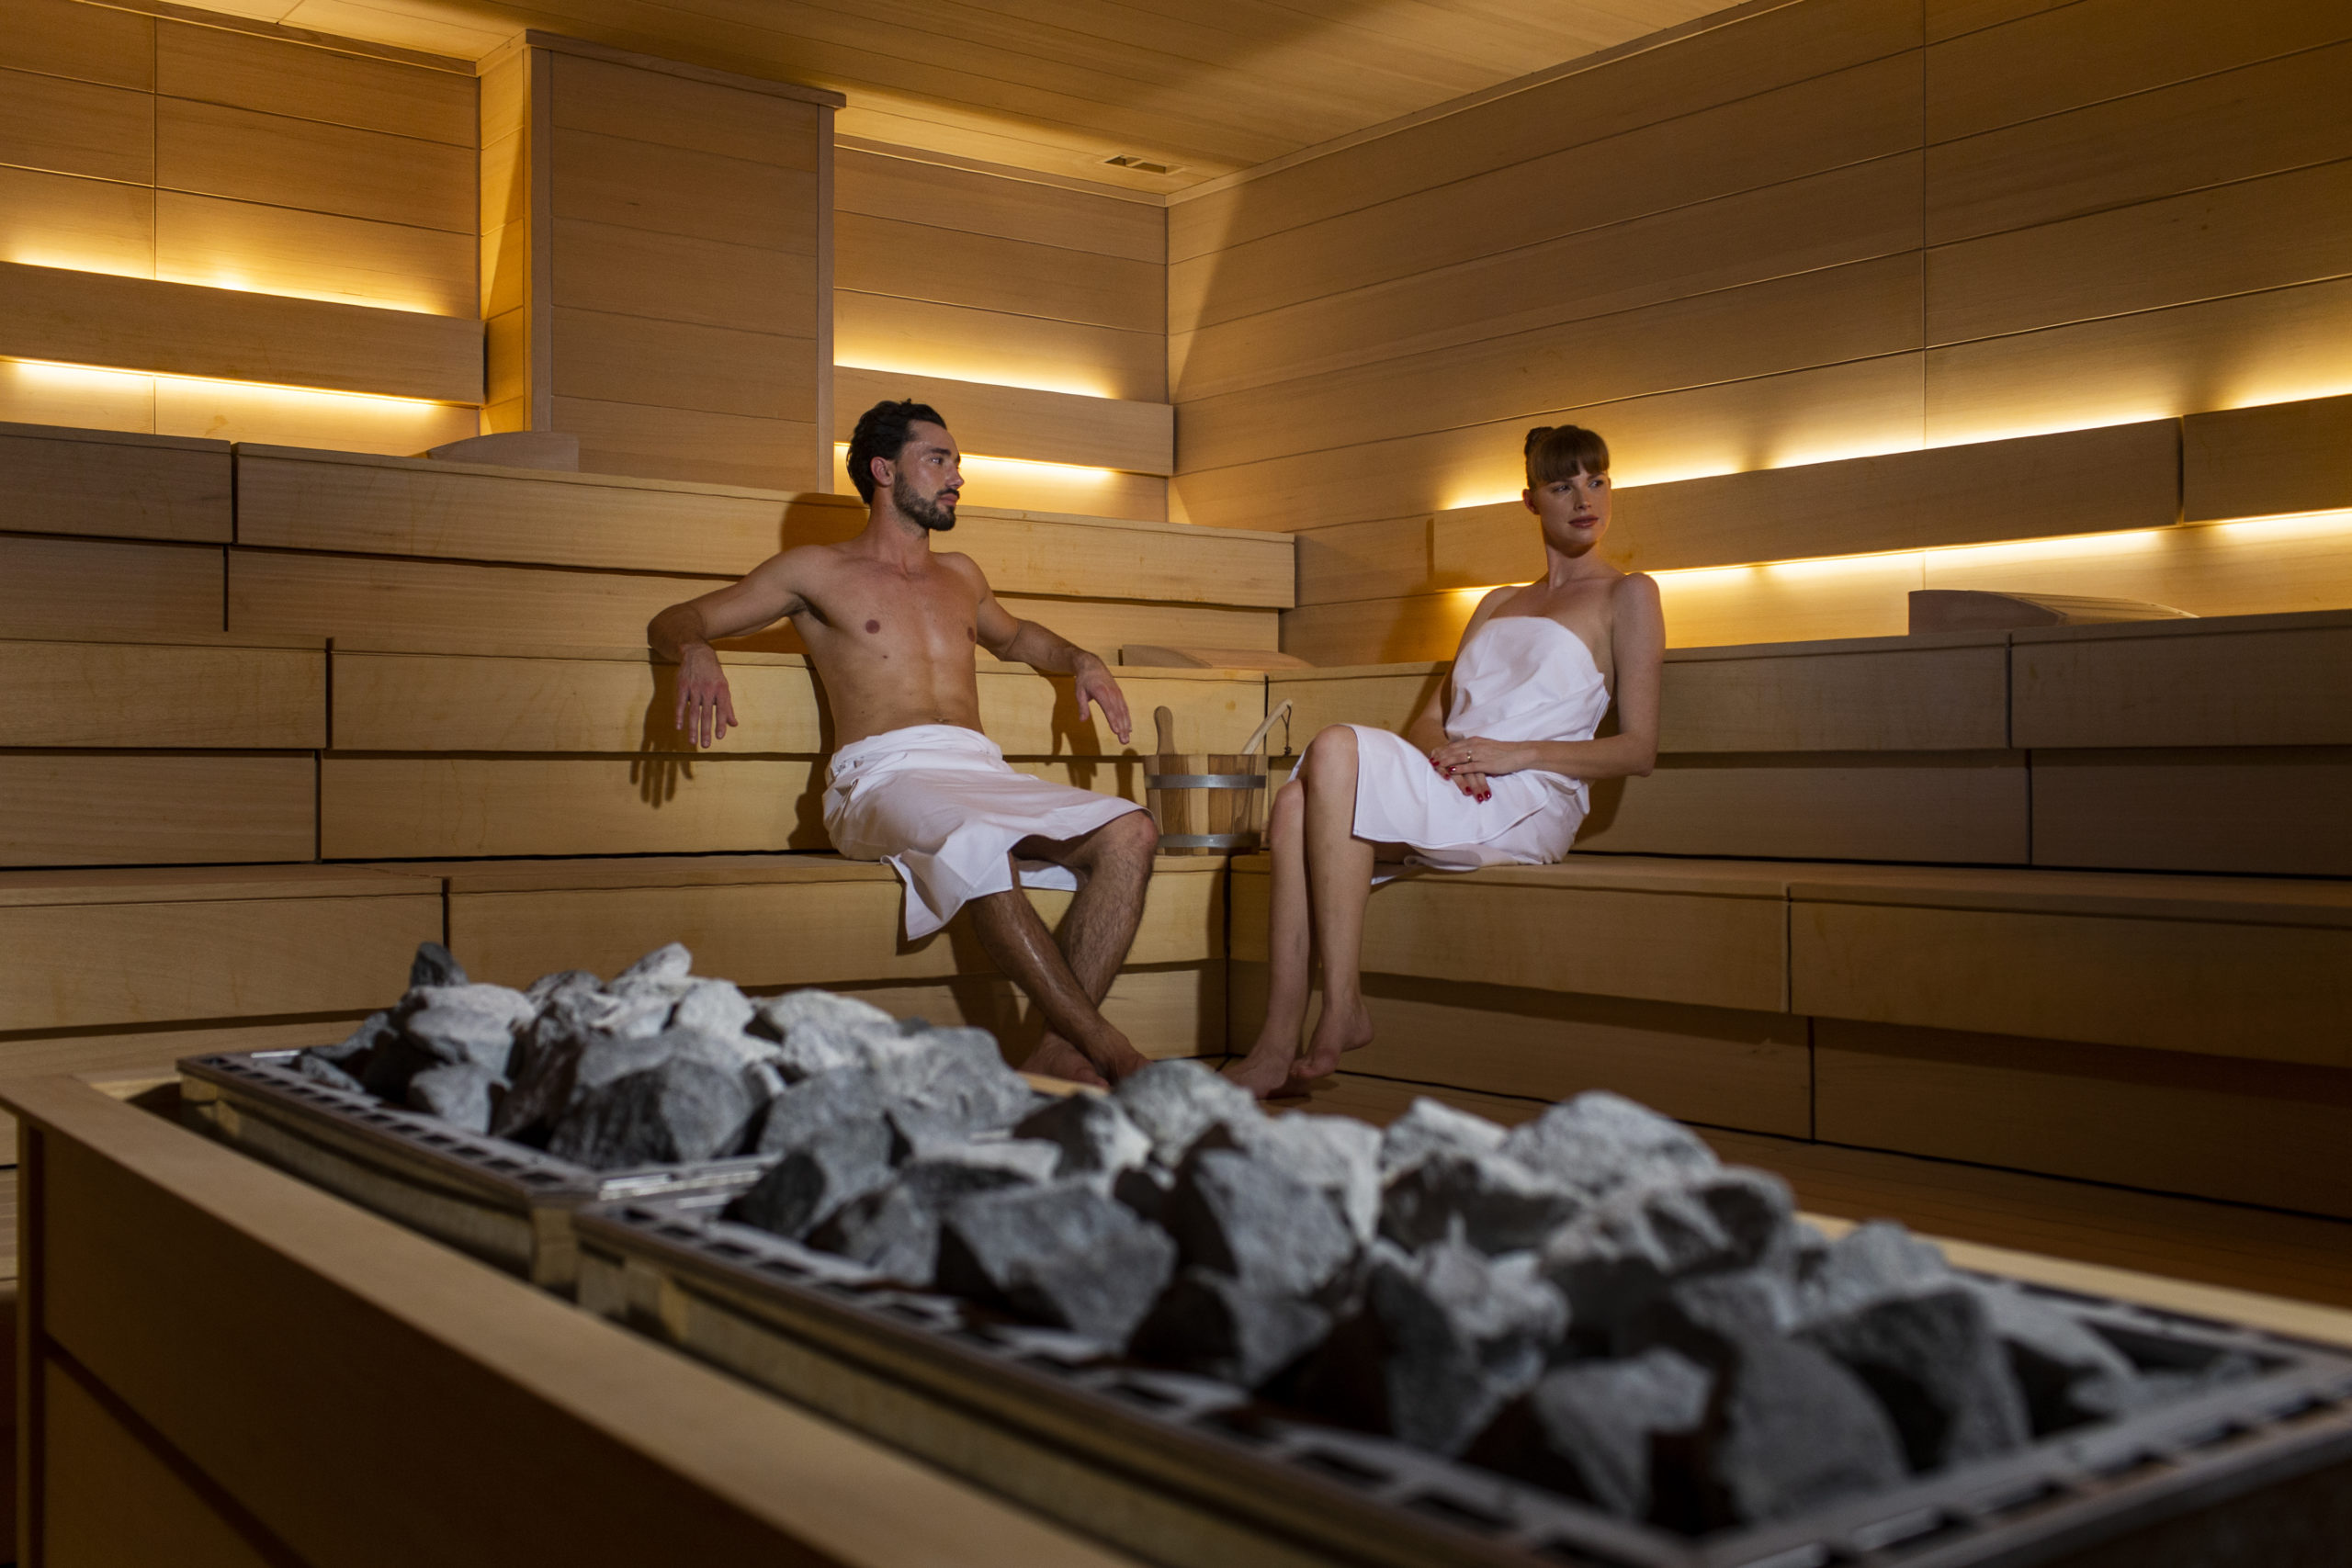 Hotel_Ajda_Sauna_Couple_01_122018_BorDobrin